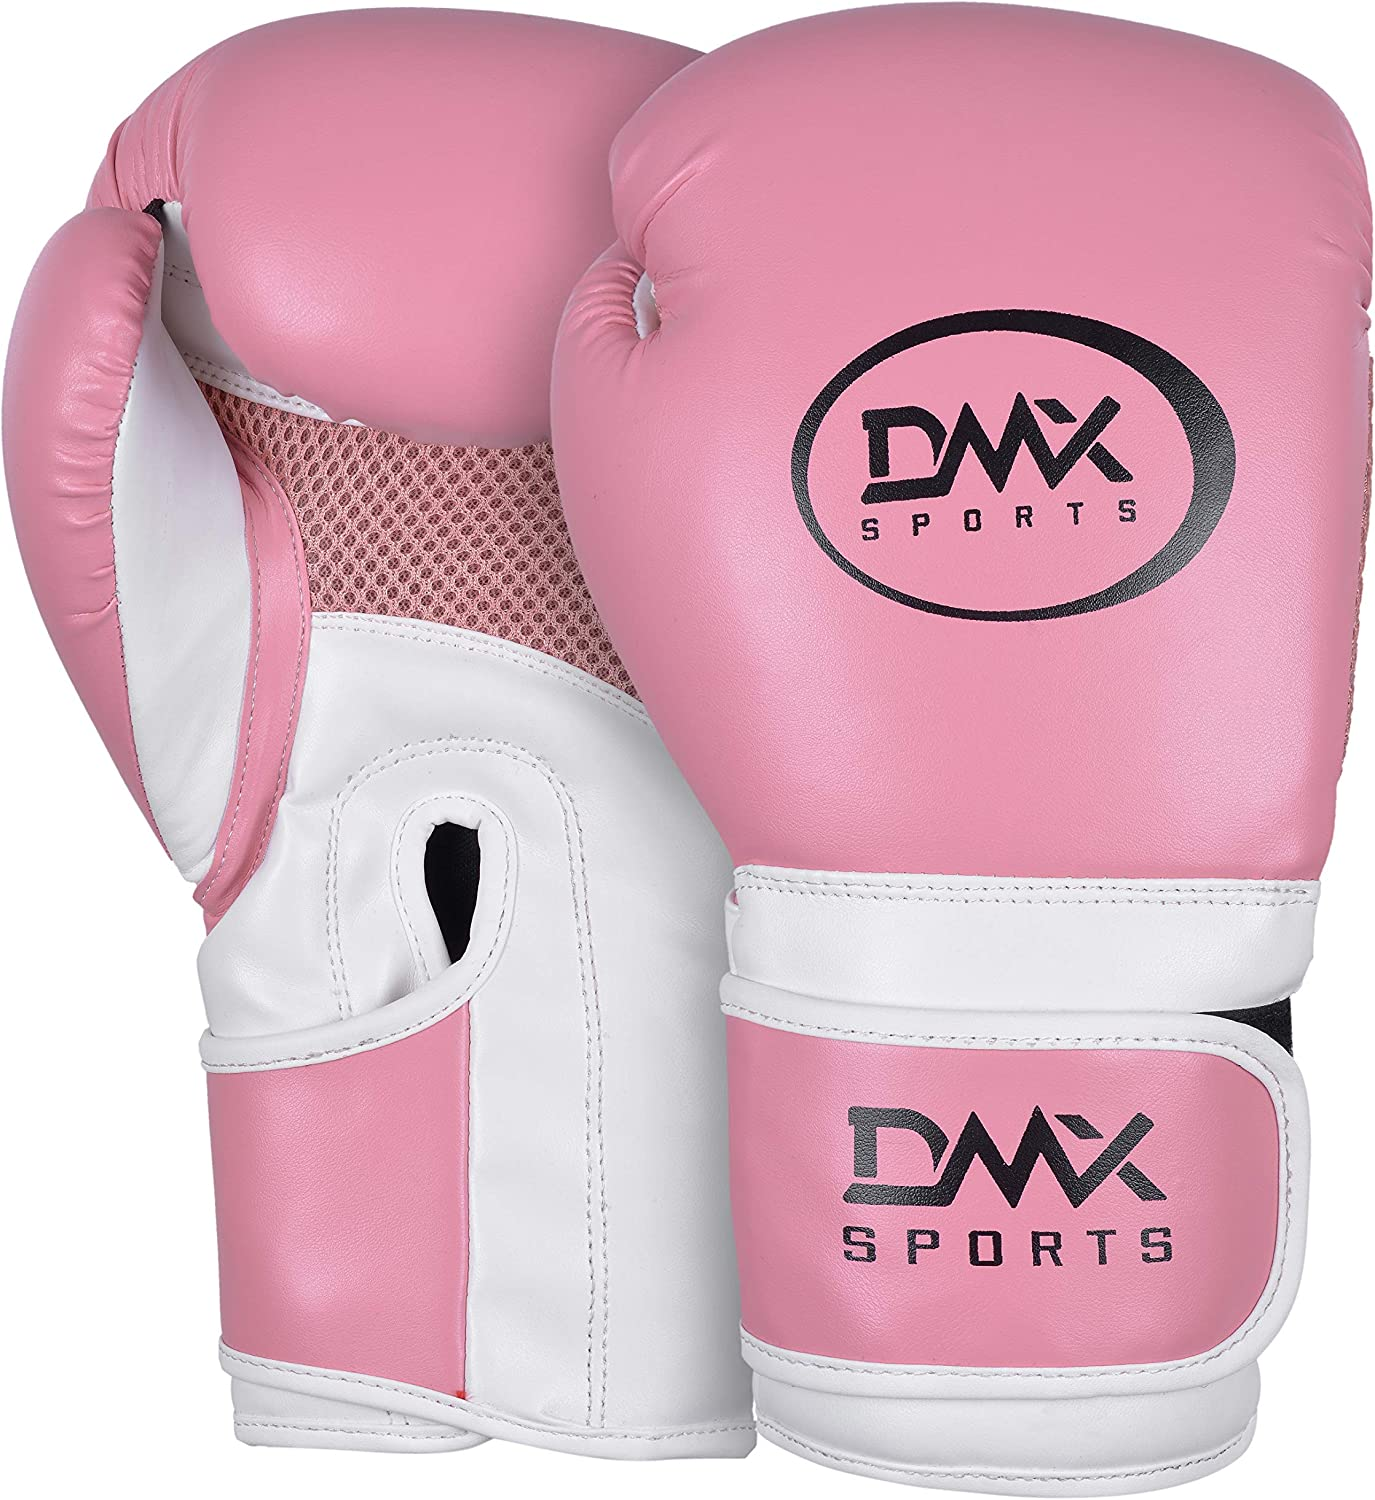 Muay Thai Style Punching Bag Mitts Kickboxing Bag Work Gel Sparring Training Gloves 1 Year Warranty !!!! Pair Boxing MMA DMX Sports Apex Boxing Gloves for Men /& Women Fight Gloves